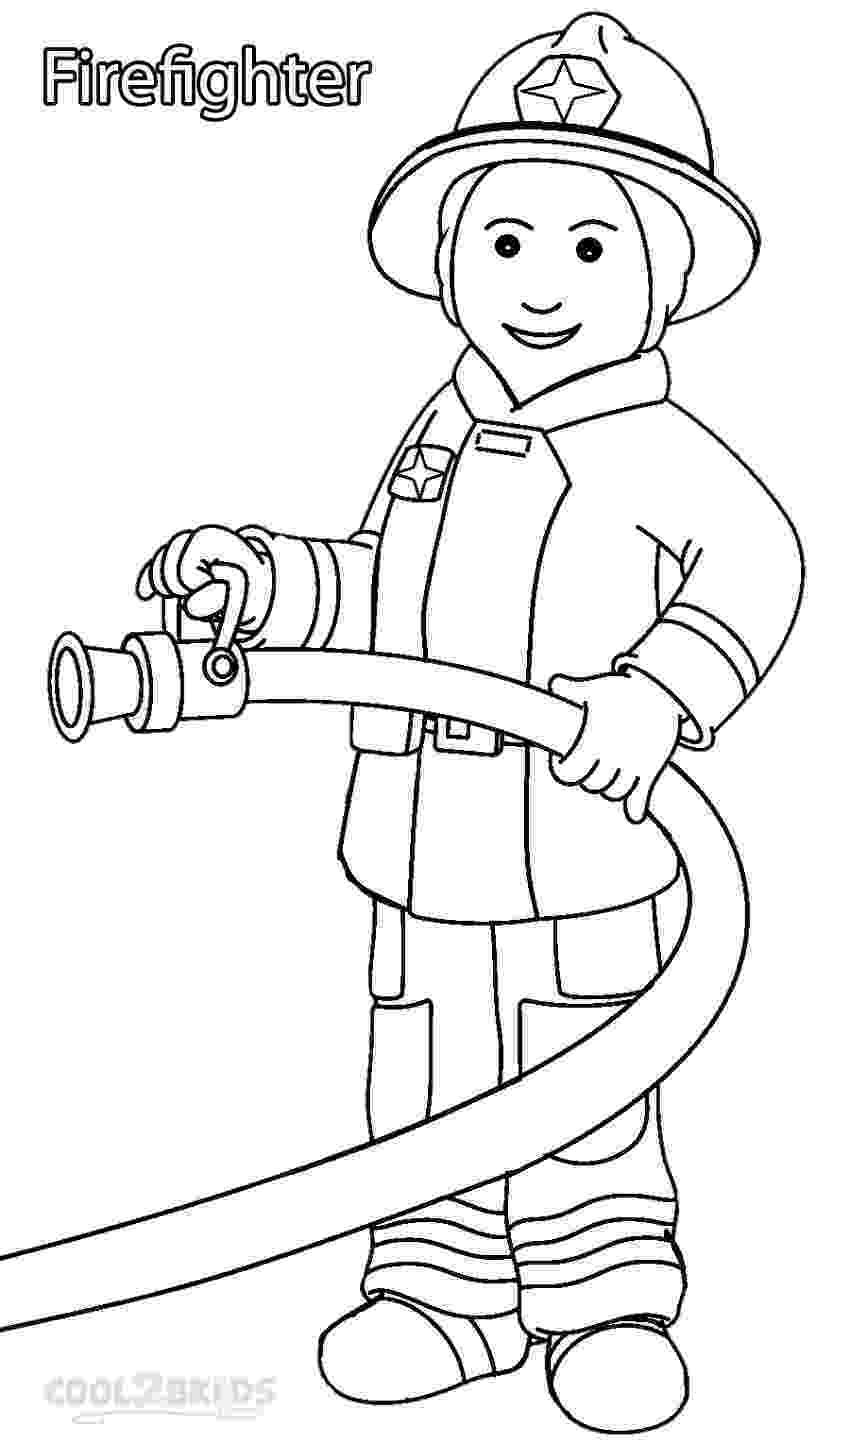 coloring pictures of community helpers top 10 free printable community helpers coloring pages online coloring community helpers pictures of